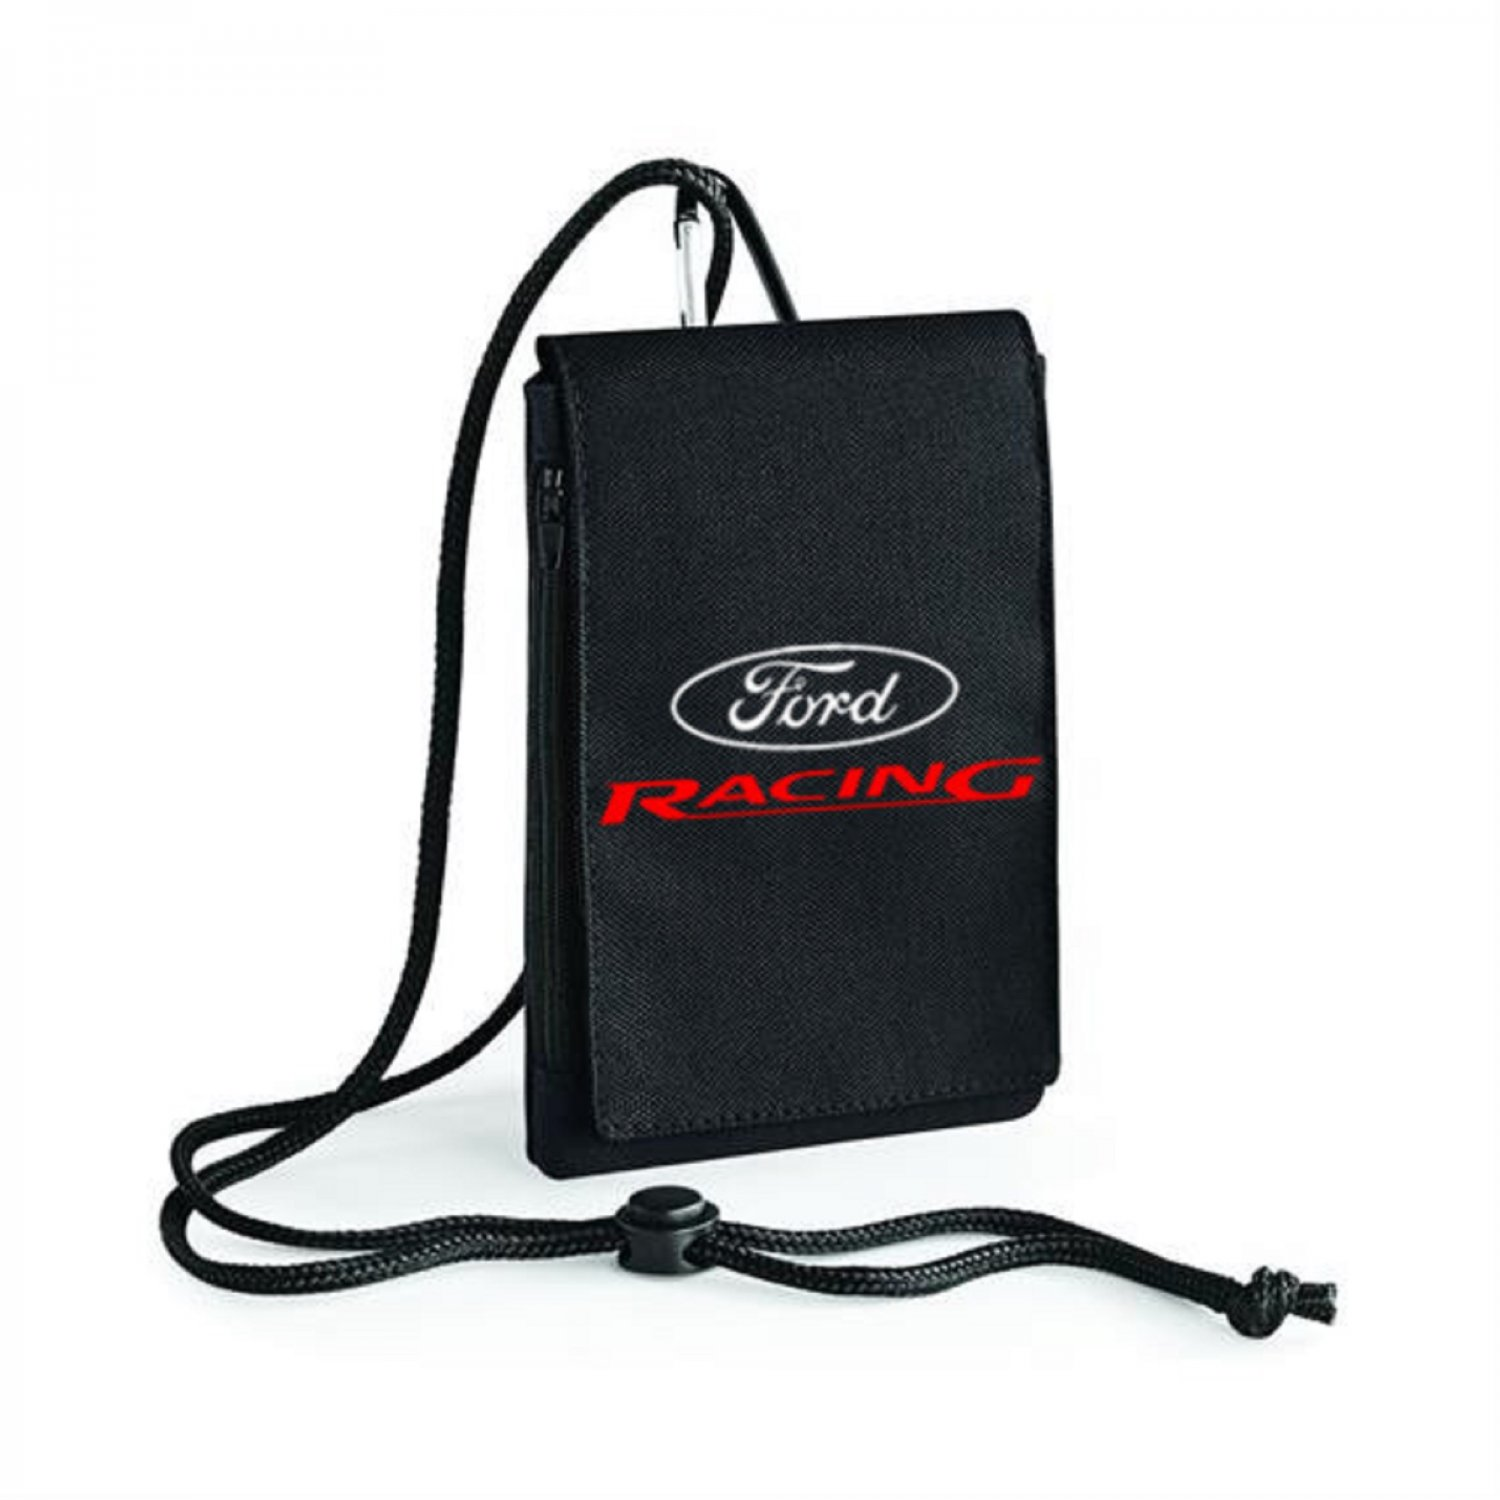 Ford Racing Inspired Bagbase Phone Pouch